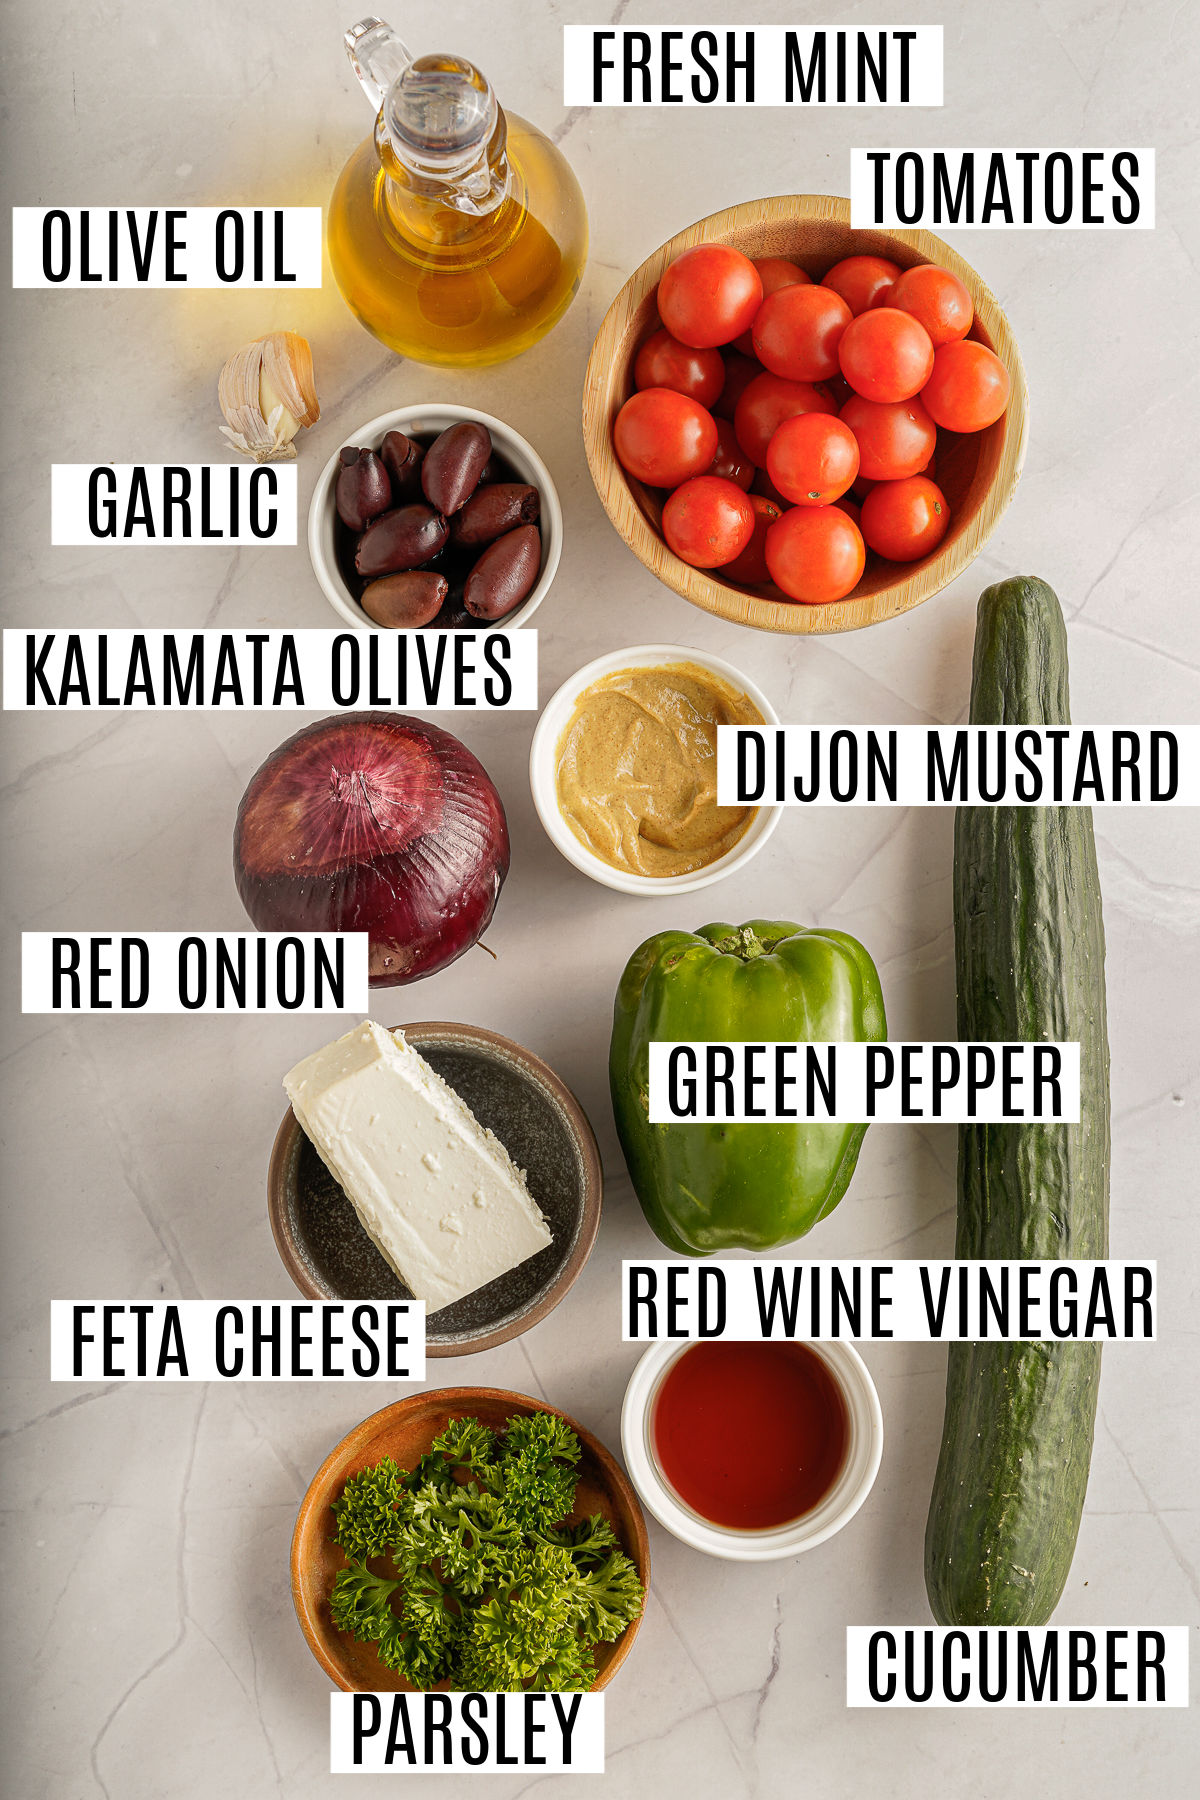 Ingredients needed for no sugar added greek salad and dressing.